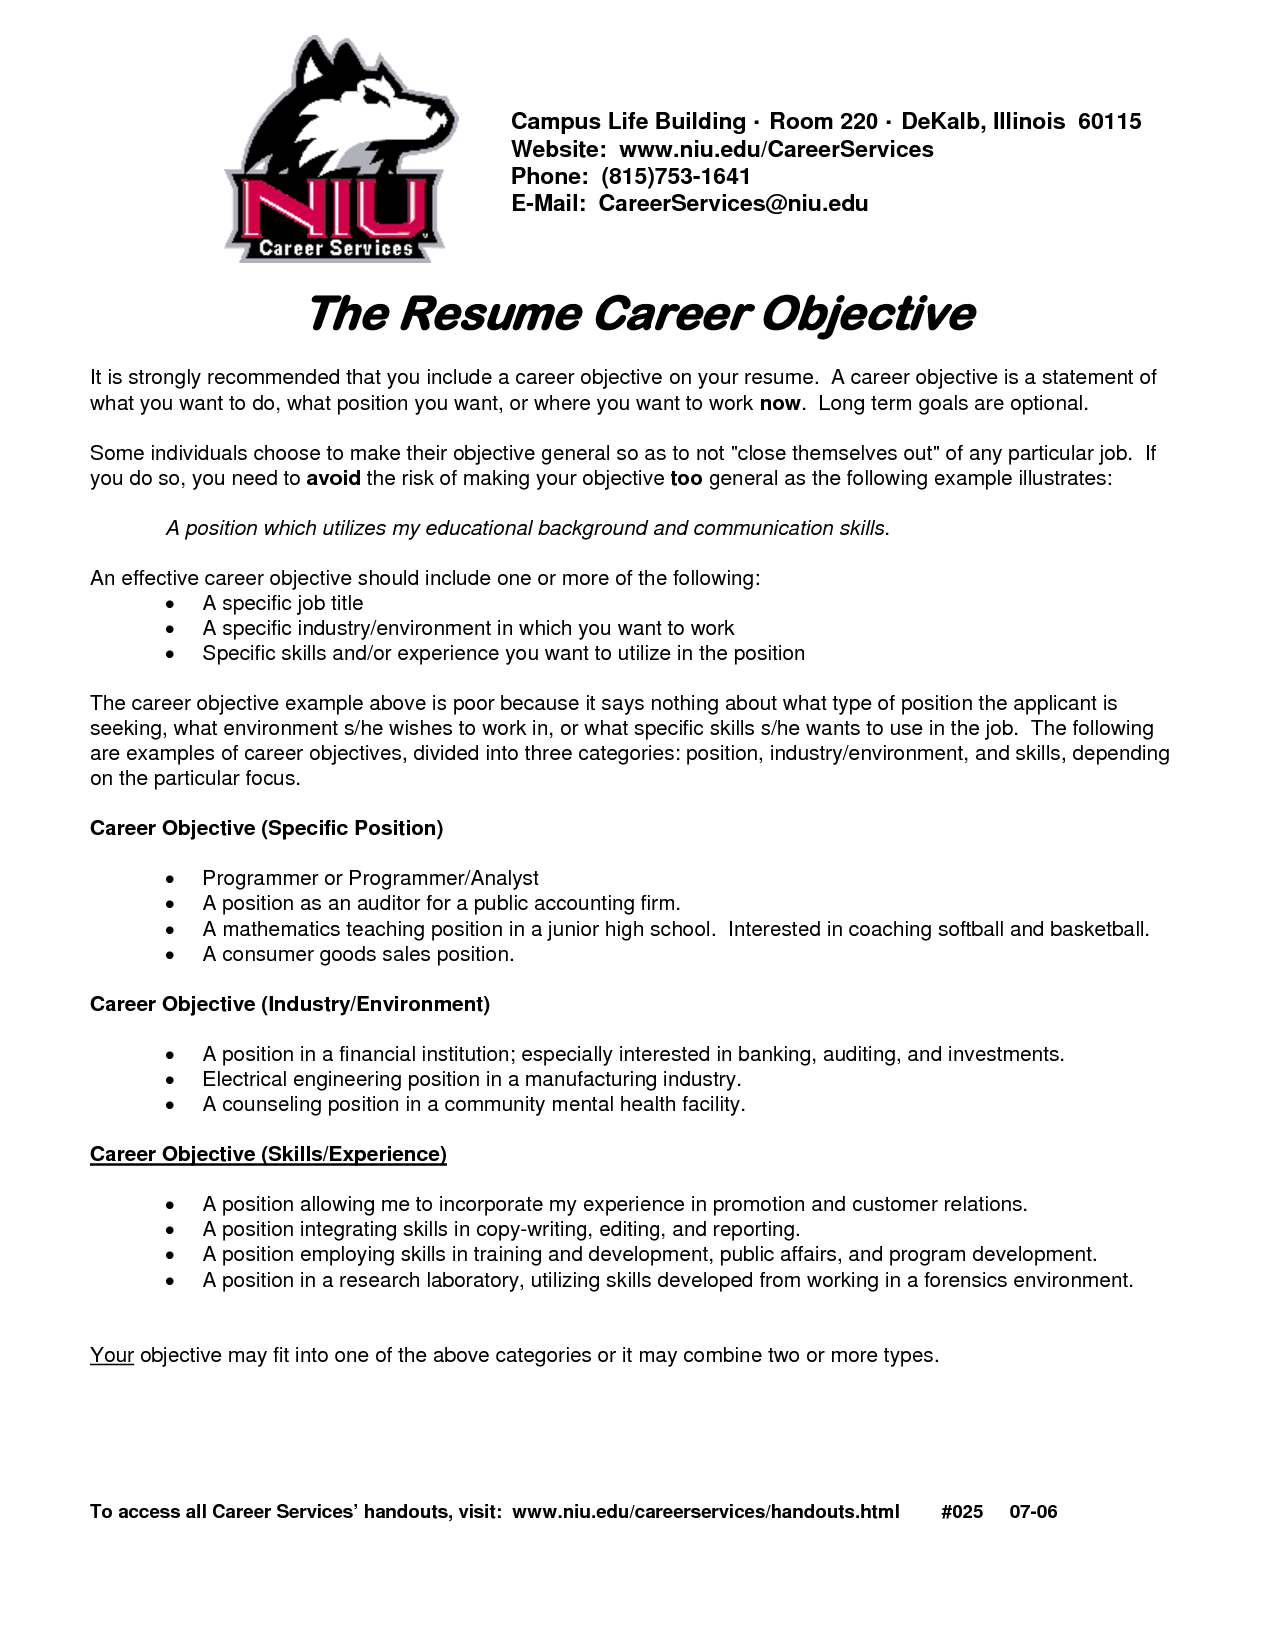 student resume objective examples resume new job. Resume Example. Resume CV Cover Letter